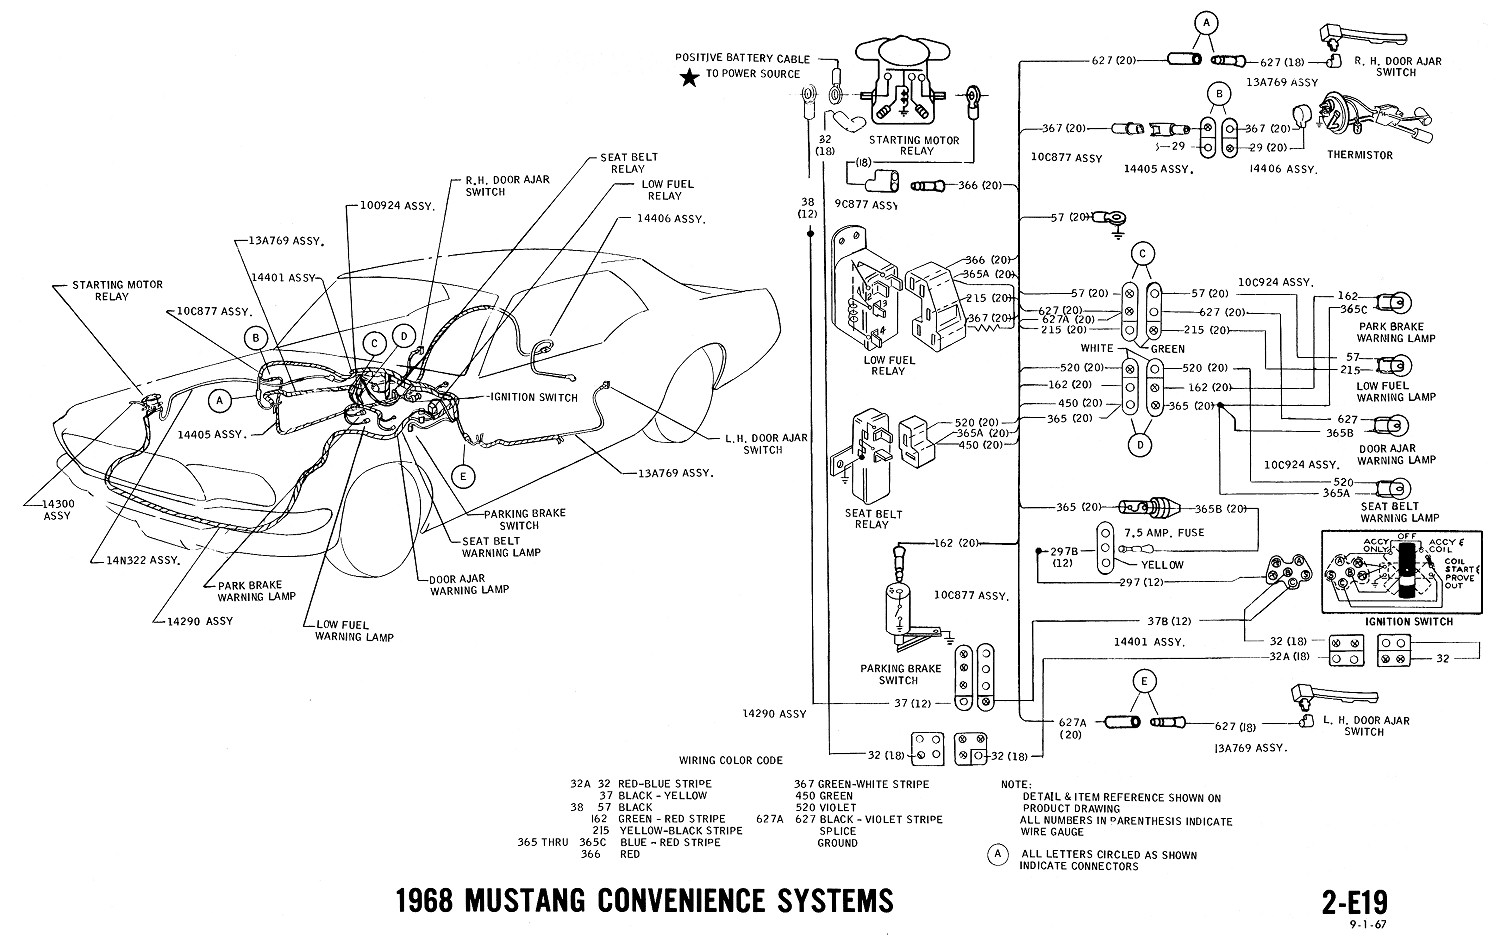 Ford Mustang Wiring Diagram Library 2010 1993 Convenience Systems